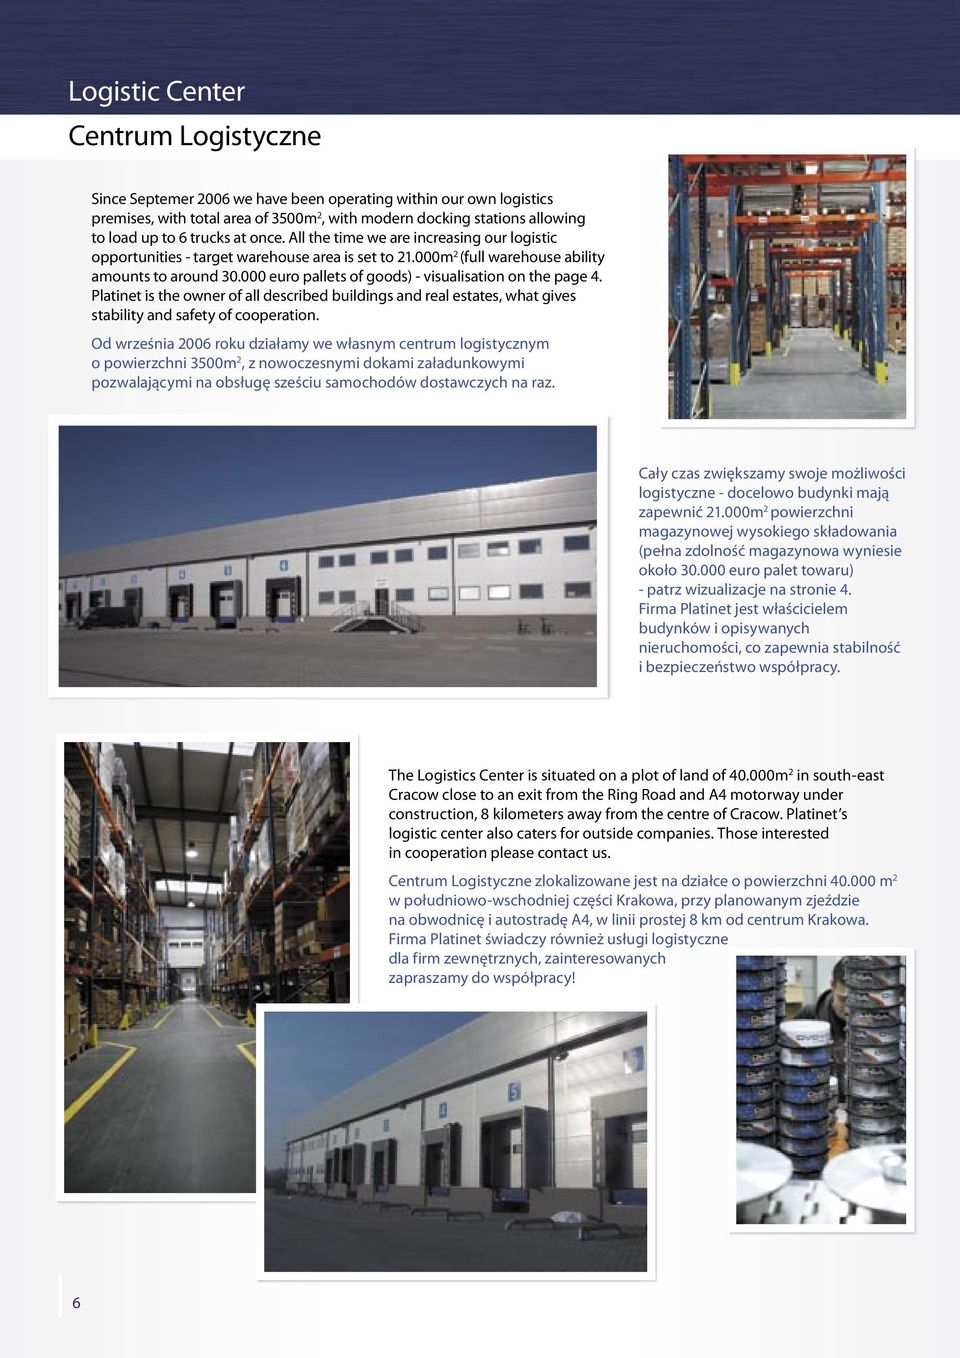 000 euro pallets of goods) - visualisation on the page 4. Platinet is the owner of all described buildings and real estates, what gives stability and safety of cooperation.